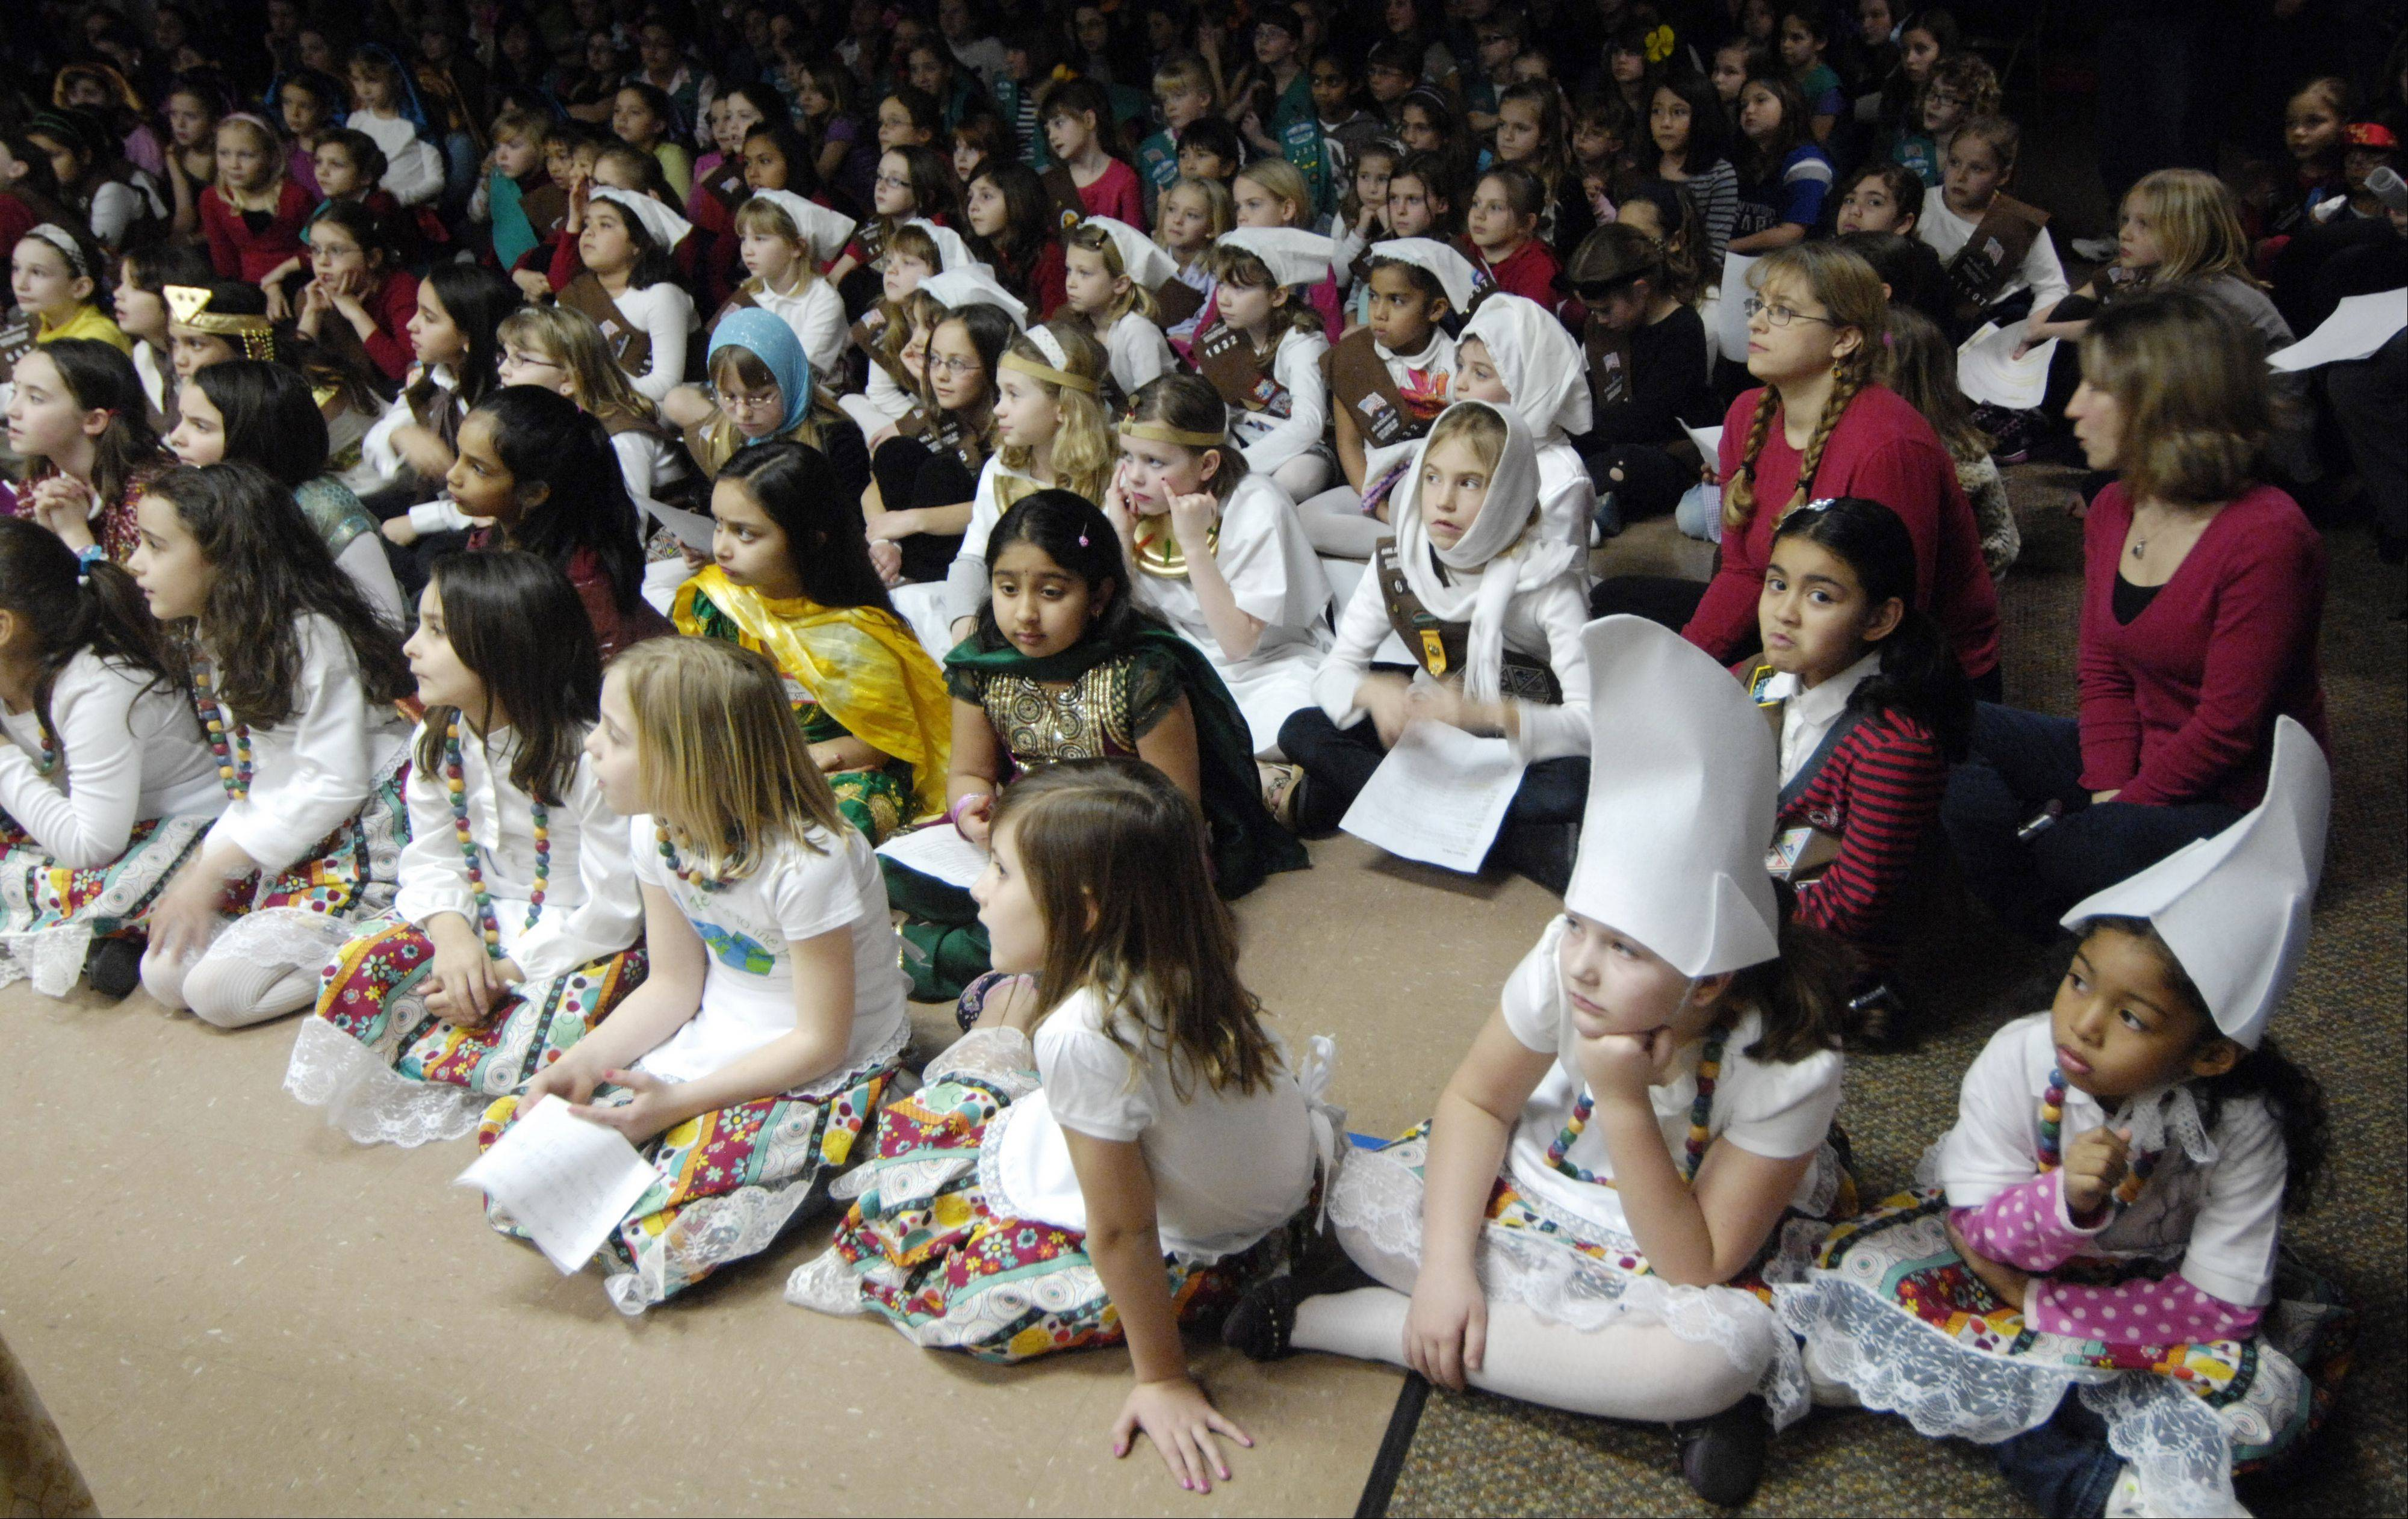 Scouts watch skits during Girl Scouts World Thinking Day held earlier this month at the Society of the Danube Swabians in Des Plaines. The Girl Scouts mark their 100th anniversary today.